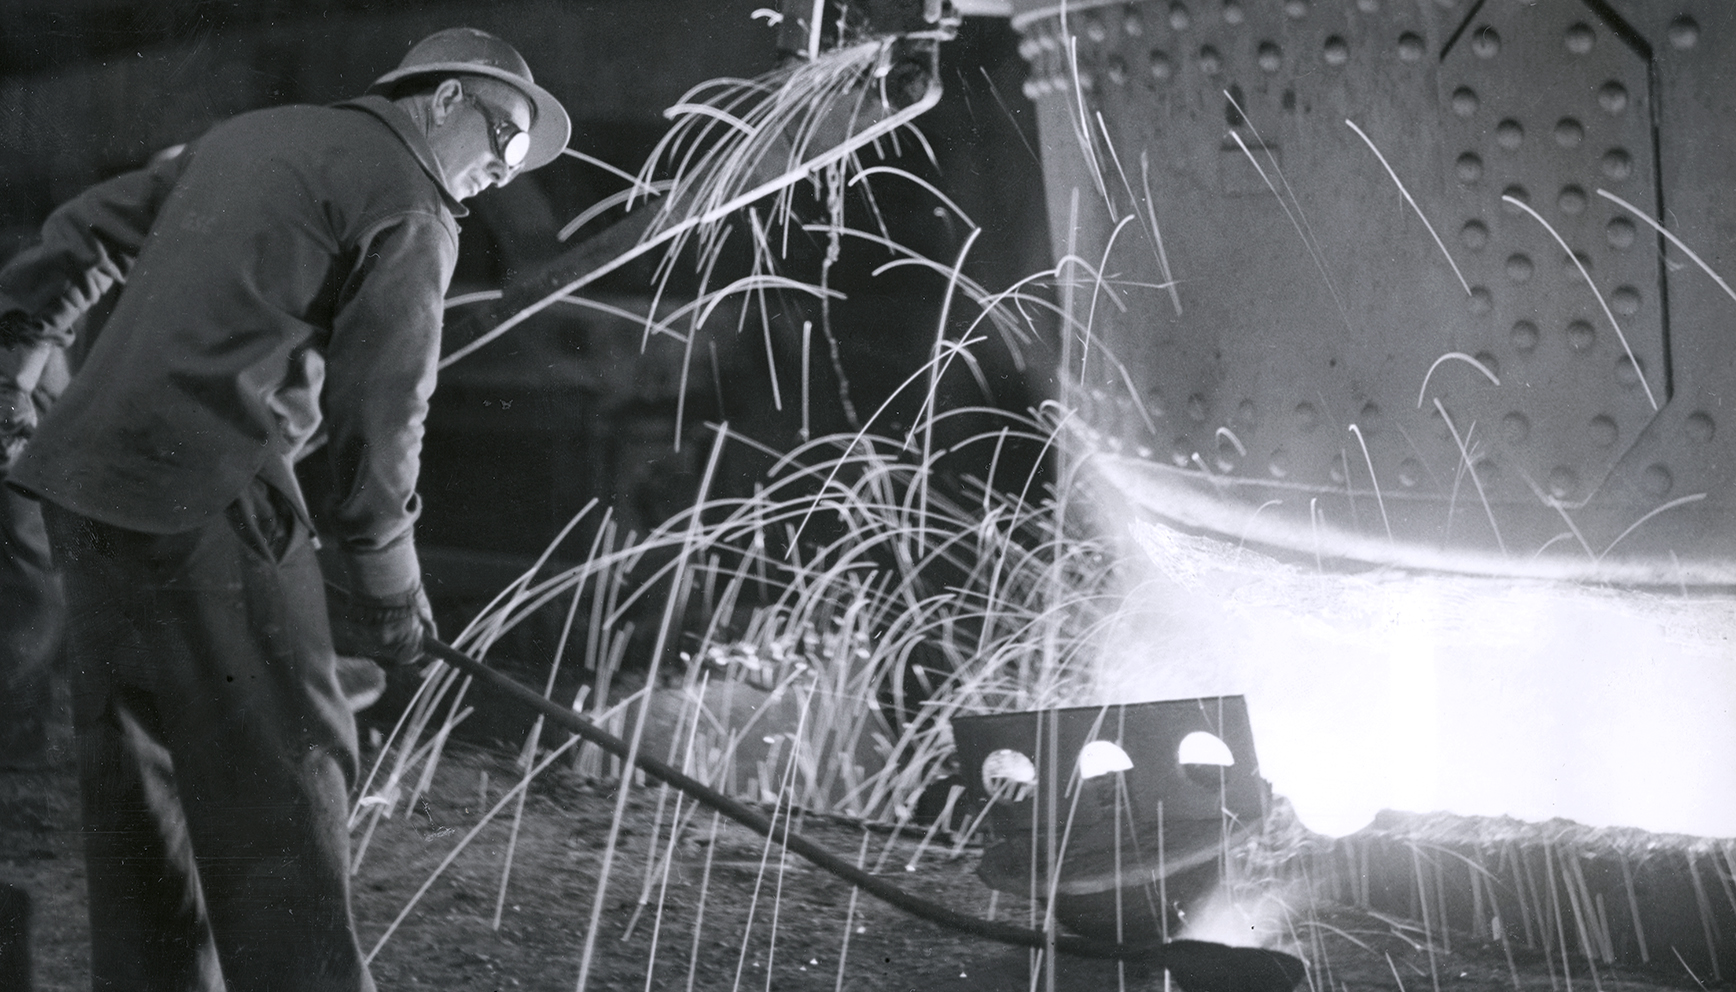 Steelworker near large machinery with sparks